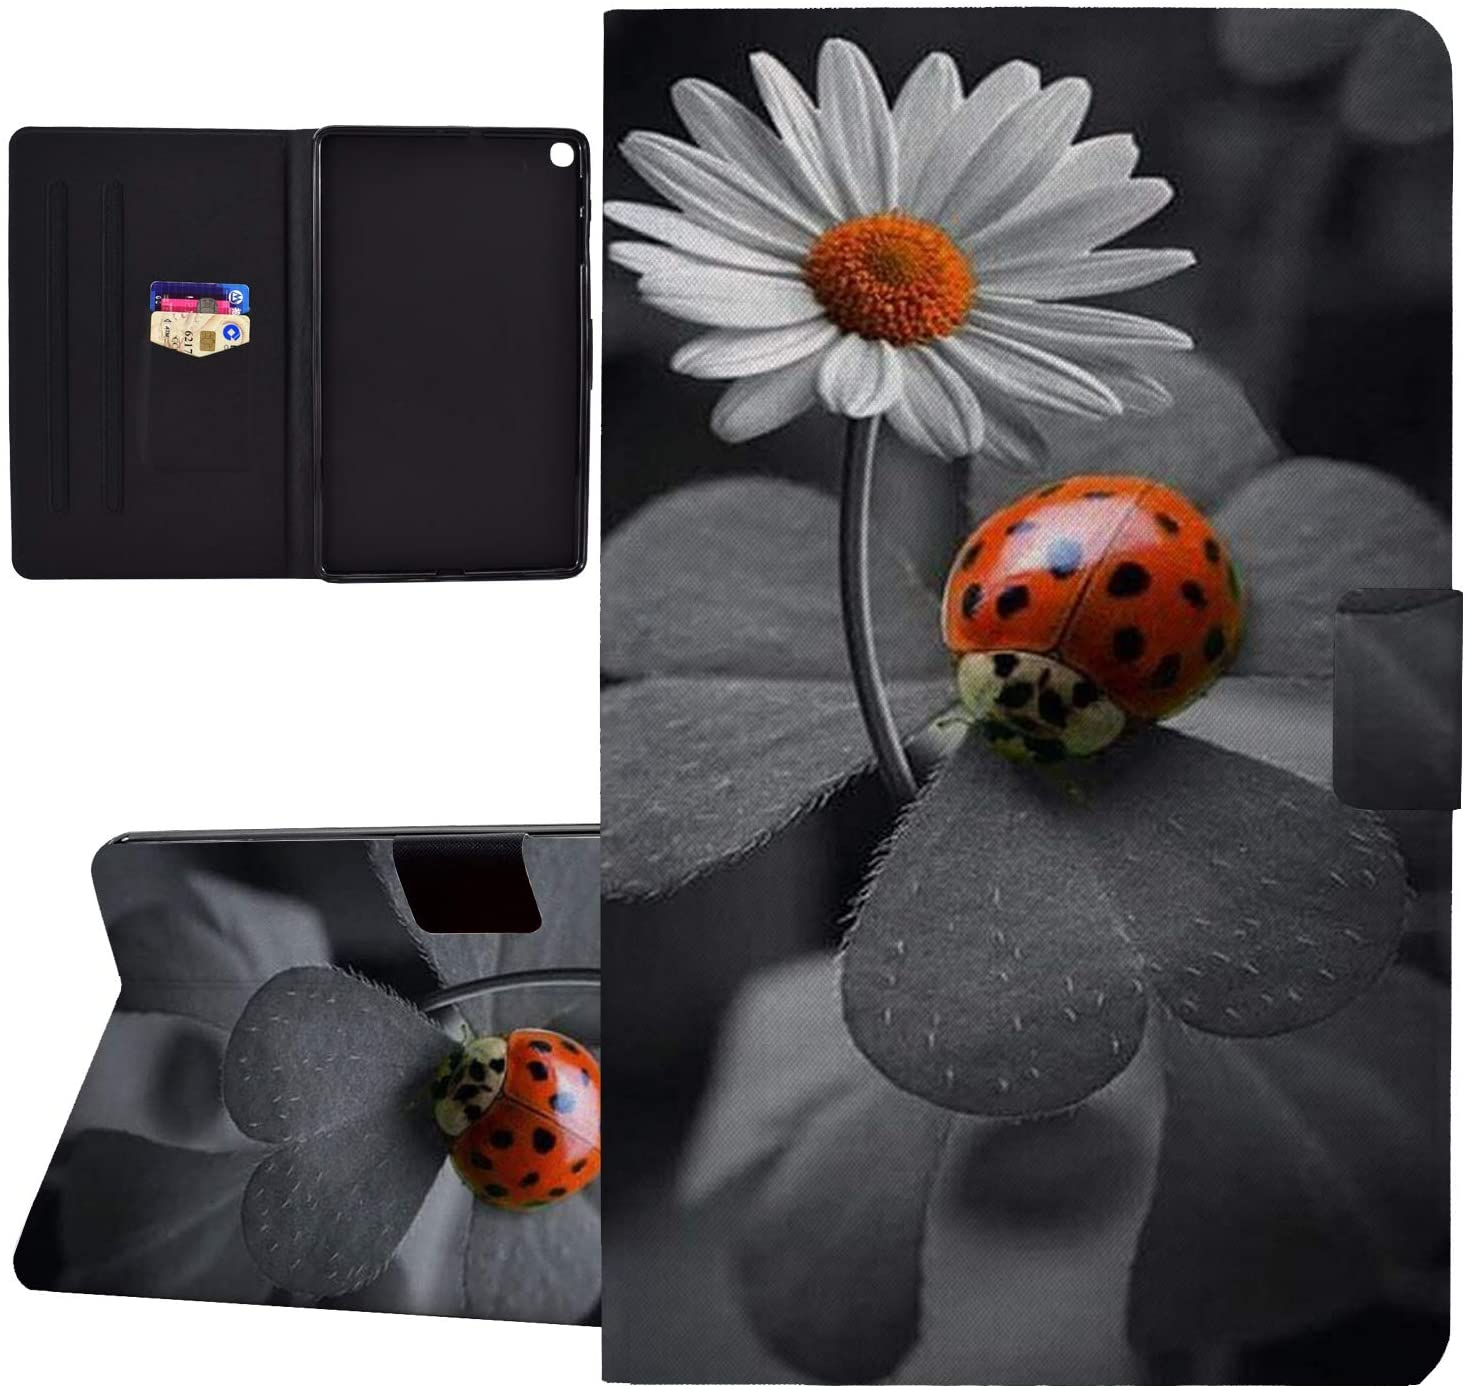 Galaxy Tab A 10.1 2019 Case,Wkooff PU Leather Wallet with Auto Sleep/Wake Magnetic Slim Fit Folio Stand Shock Absorption Cover for Samsung Galaxy Tab A 10.1(SM-T510/T515/T517),Ladybug Daisy Flower